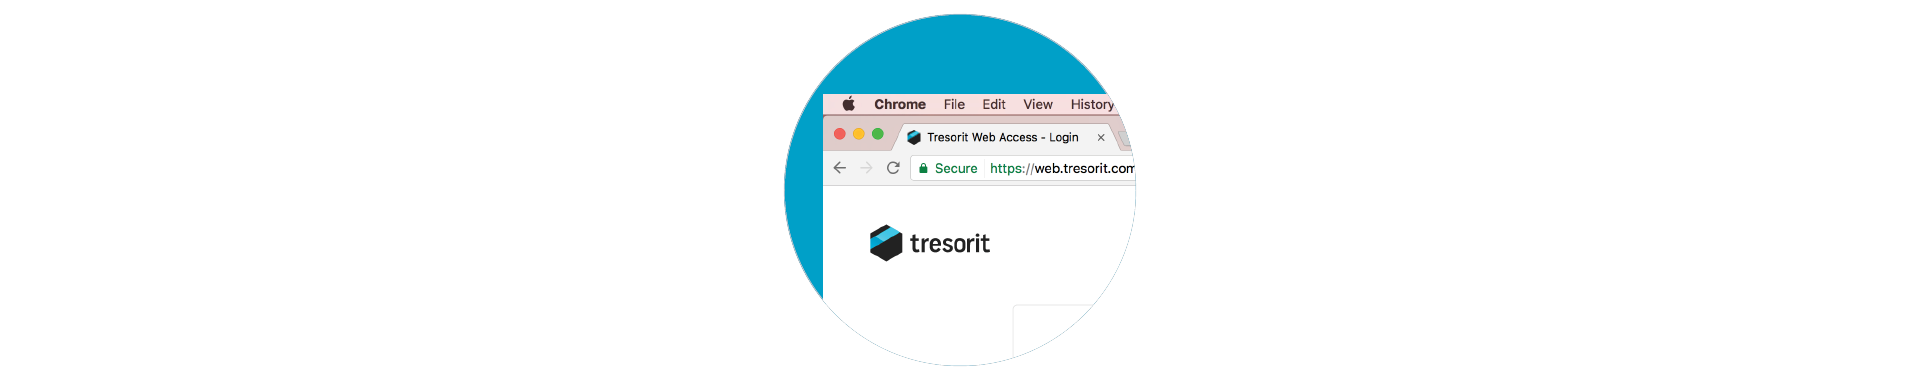 Reporting a Google Chrome vulnerability and fixing our user insights process to safeguard our zero-knowledge web service